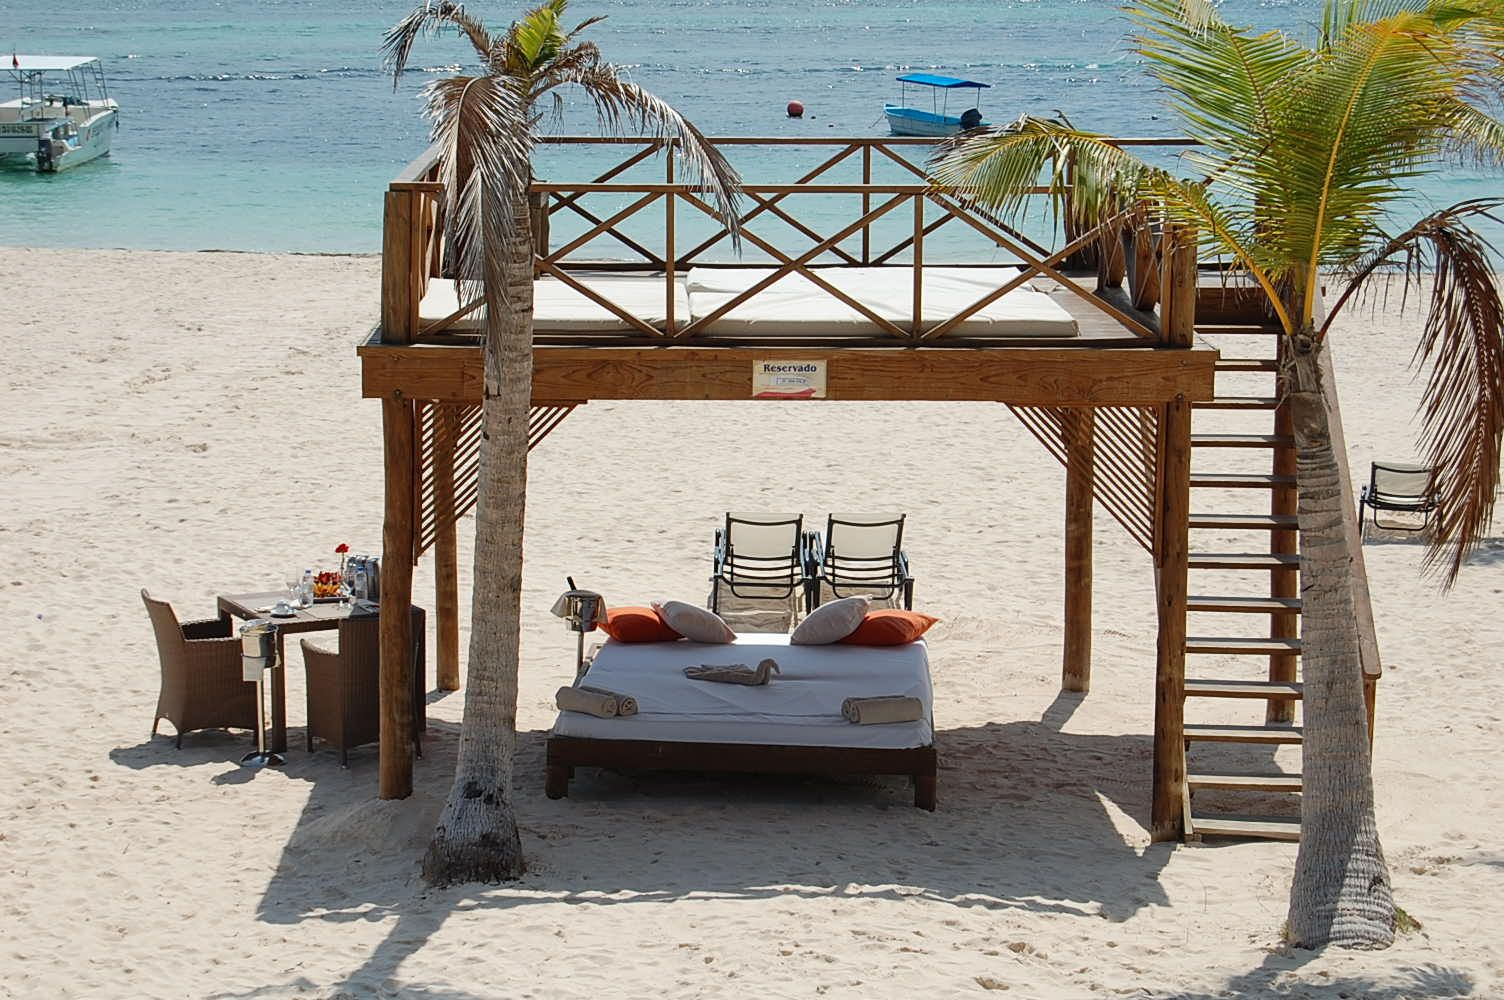 Luxury Holidays At Secrets Royal Beach Punta Cana Dominican Republic Located On An Expansive Of Powder White Sand And Surrounded By Lush Tropical